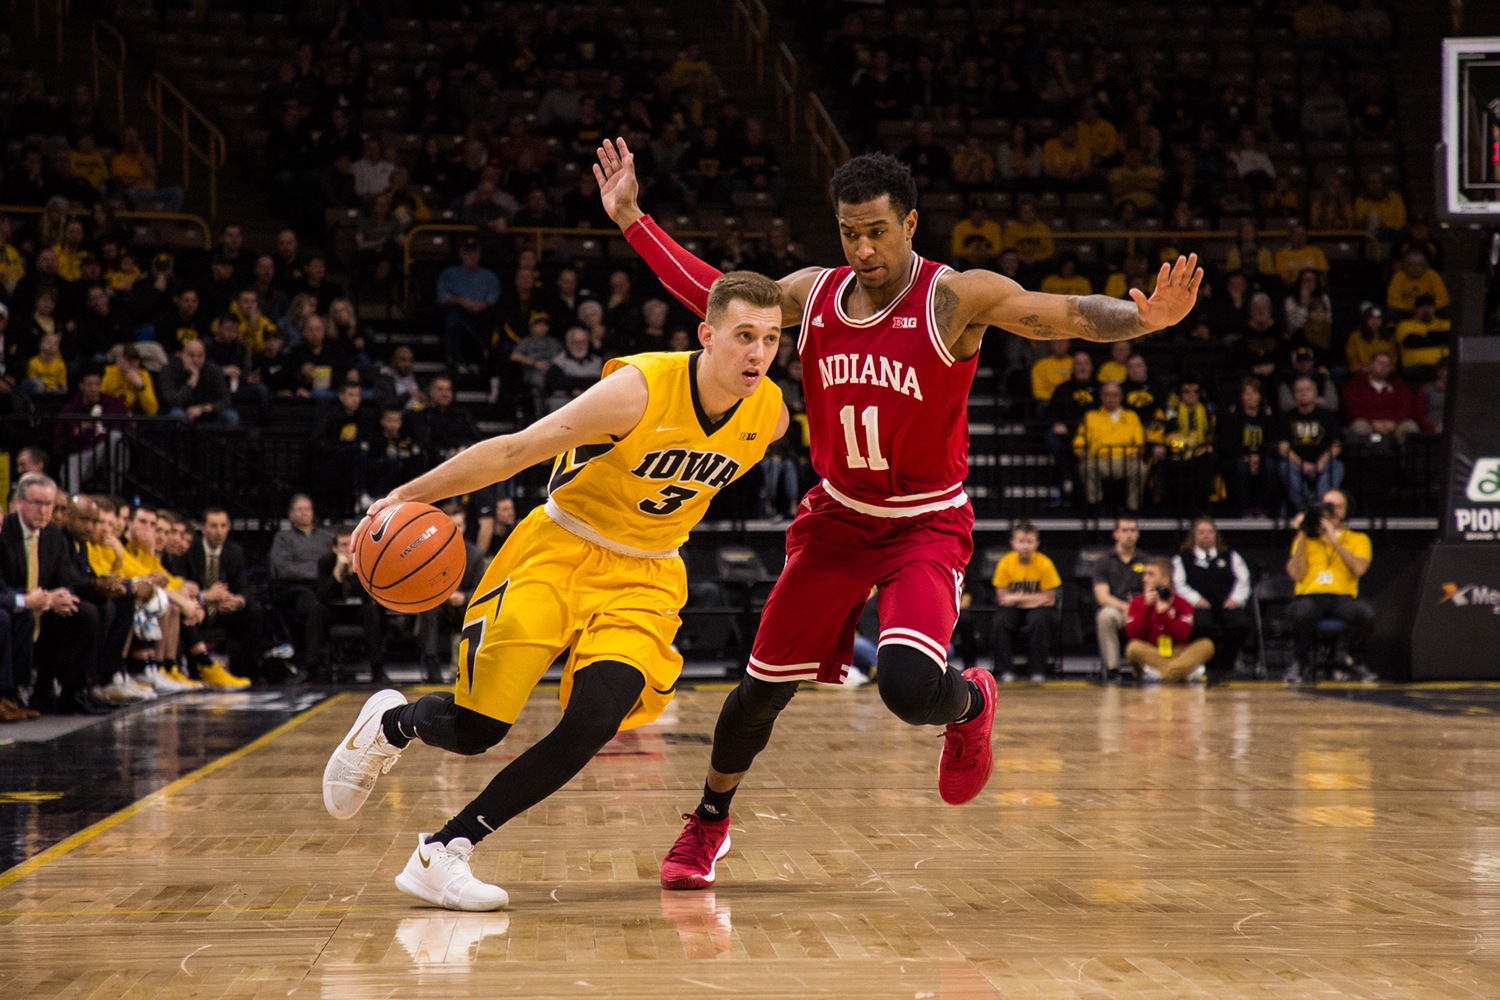 Iowa guard Jordan Bohannon drives the ball up court against Indiana University on Saturday, Feb. 17, 2018. At halftime, the Hawkeyes lead the Hoosiers 45 to 42. (David Harmantas/The Daily Iowan)